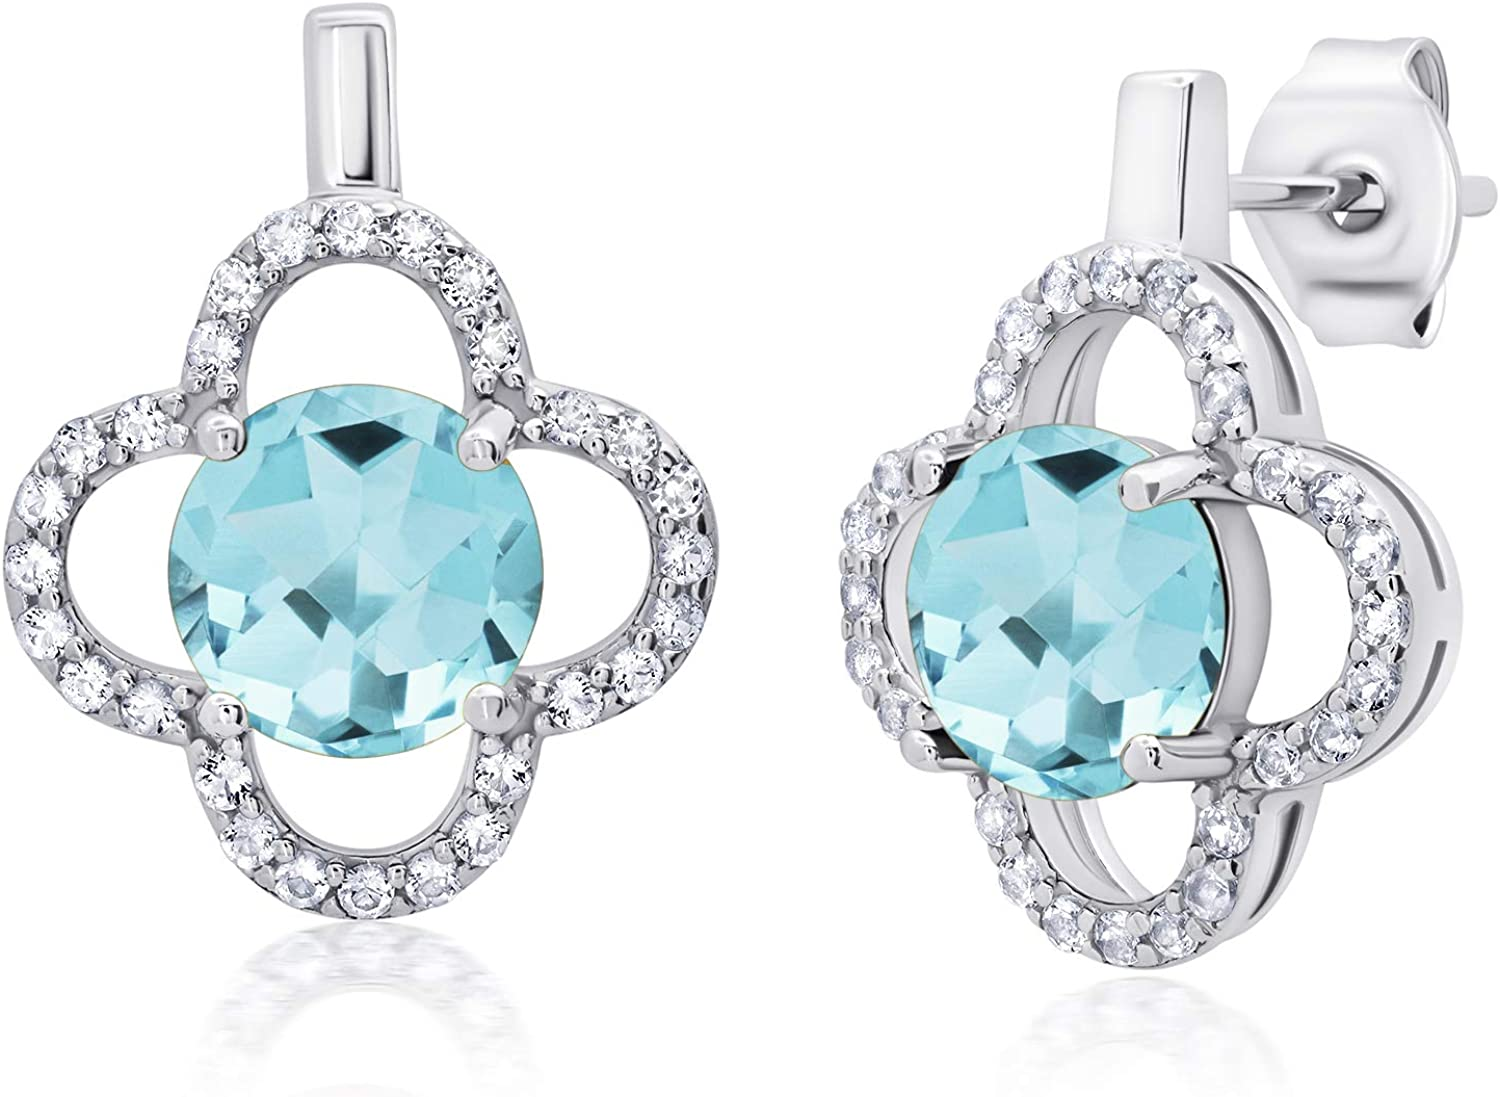 Genuine White Topaz Clover Indianapolis Mall Stud 7mm Online limited product or Earrings Cre with